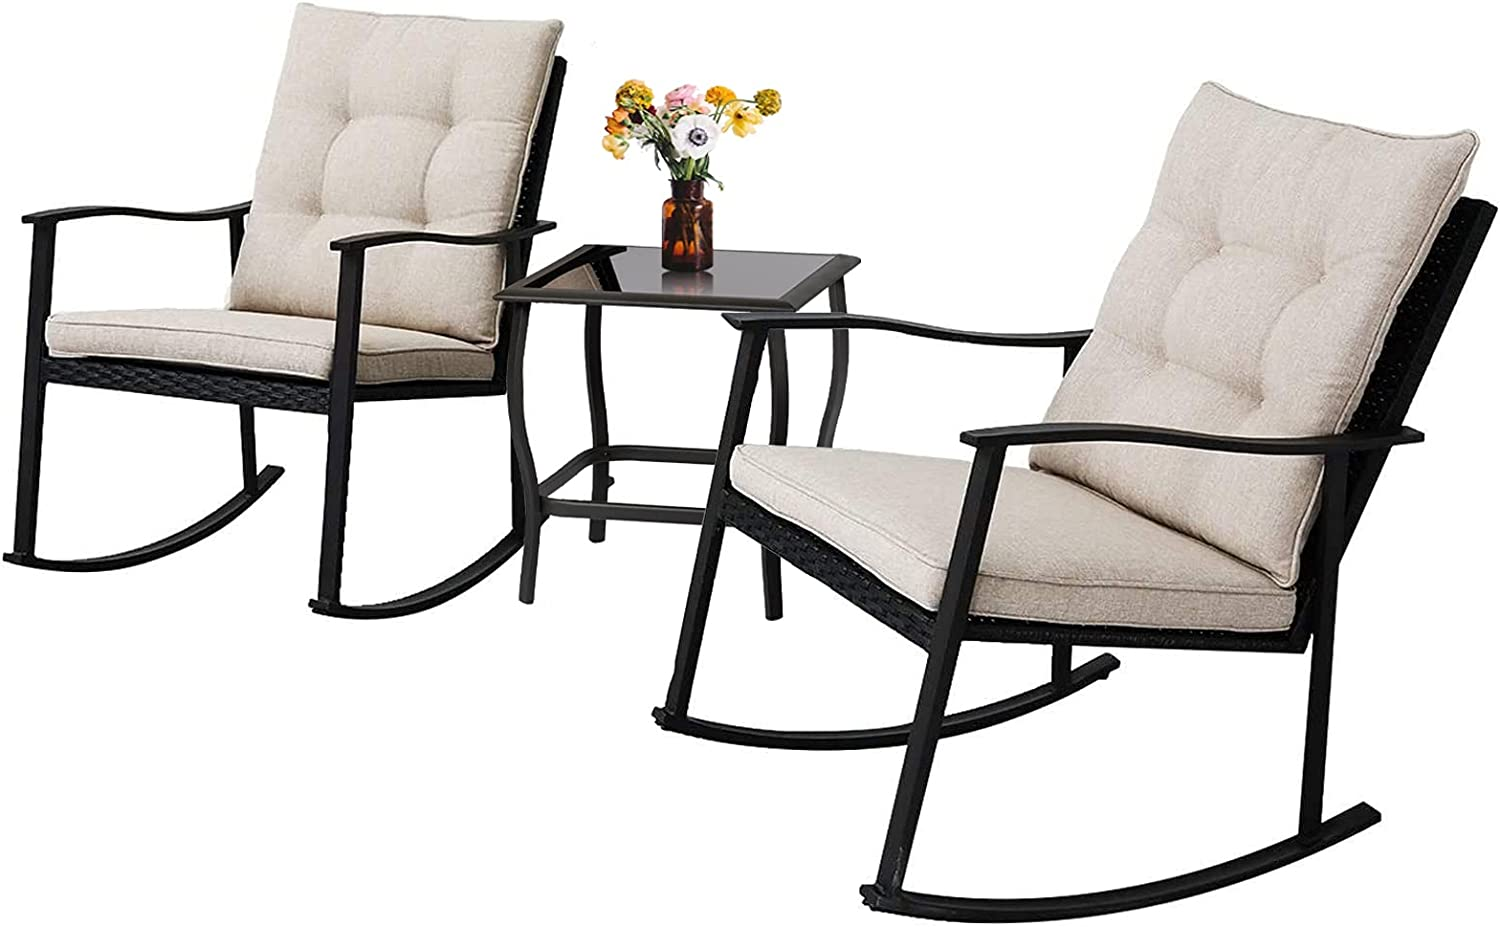 Rocking Chair Patio Bistro Set, Outdoor Rocking Chairs Set Of 2